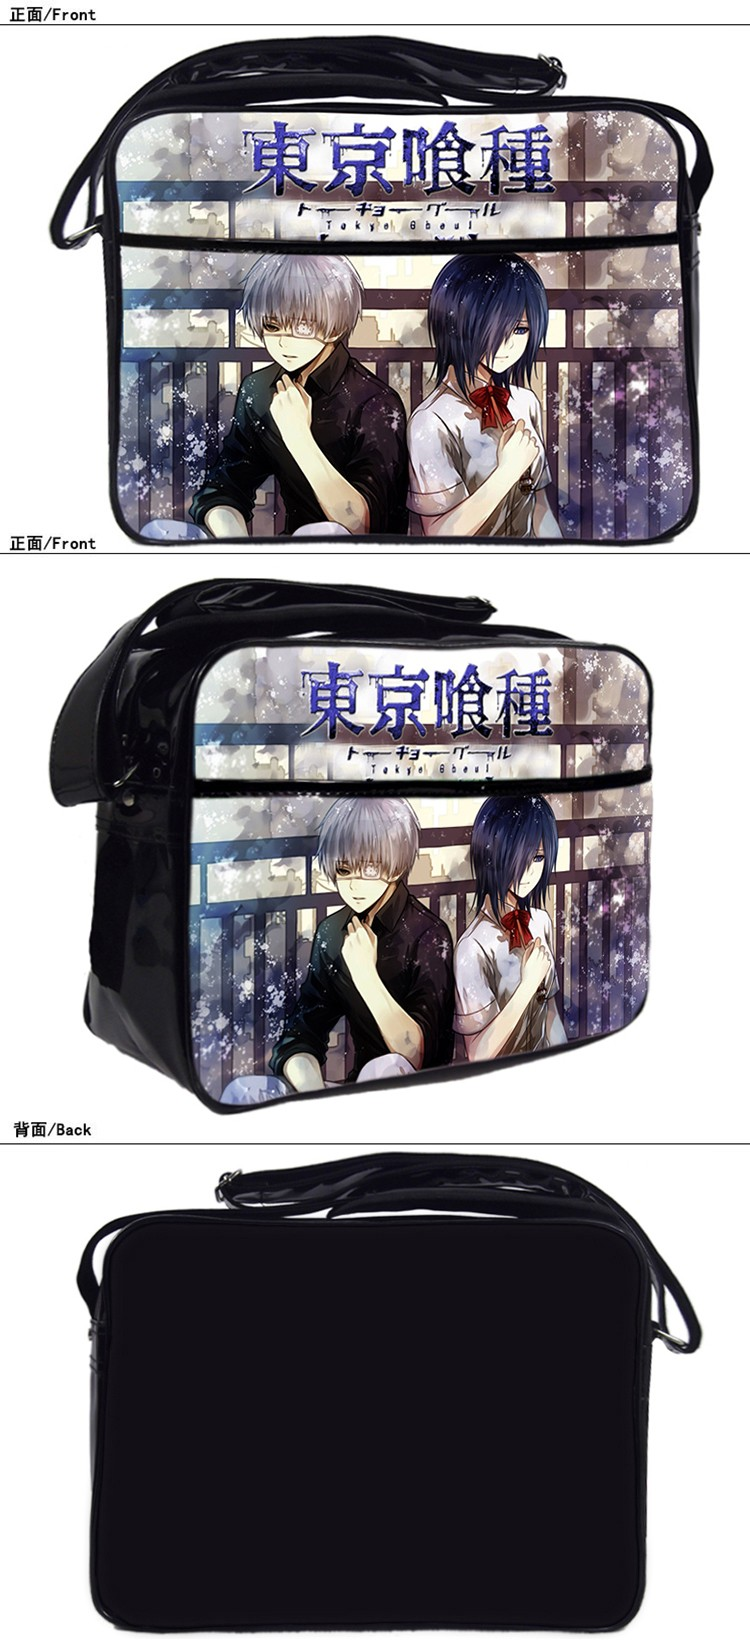 Tokyo Ghouls Sling Bags Cross Body Messenger Bag Anime Cosplay Satchel PU Waterproof Students Schoolbag